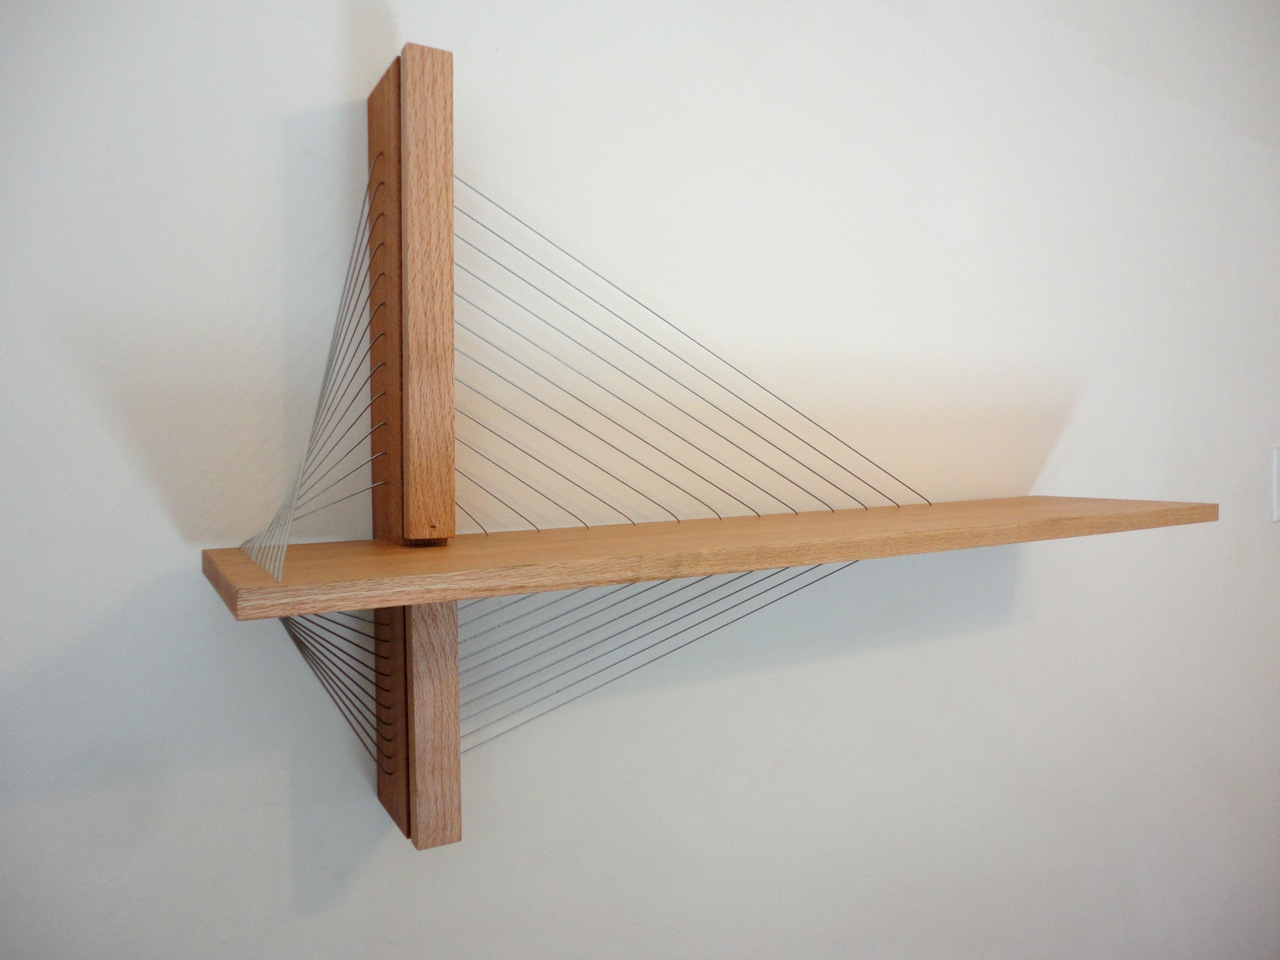 Awesome furniture are held together only by tension  Book Shelf